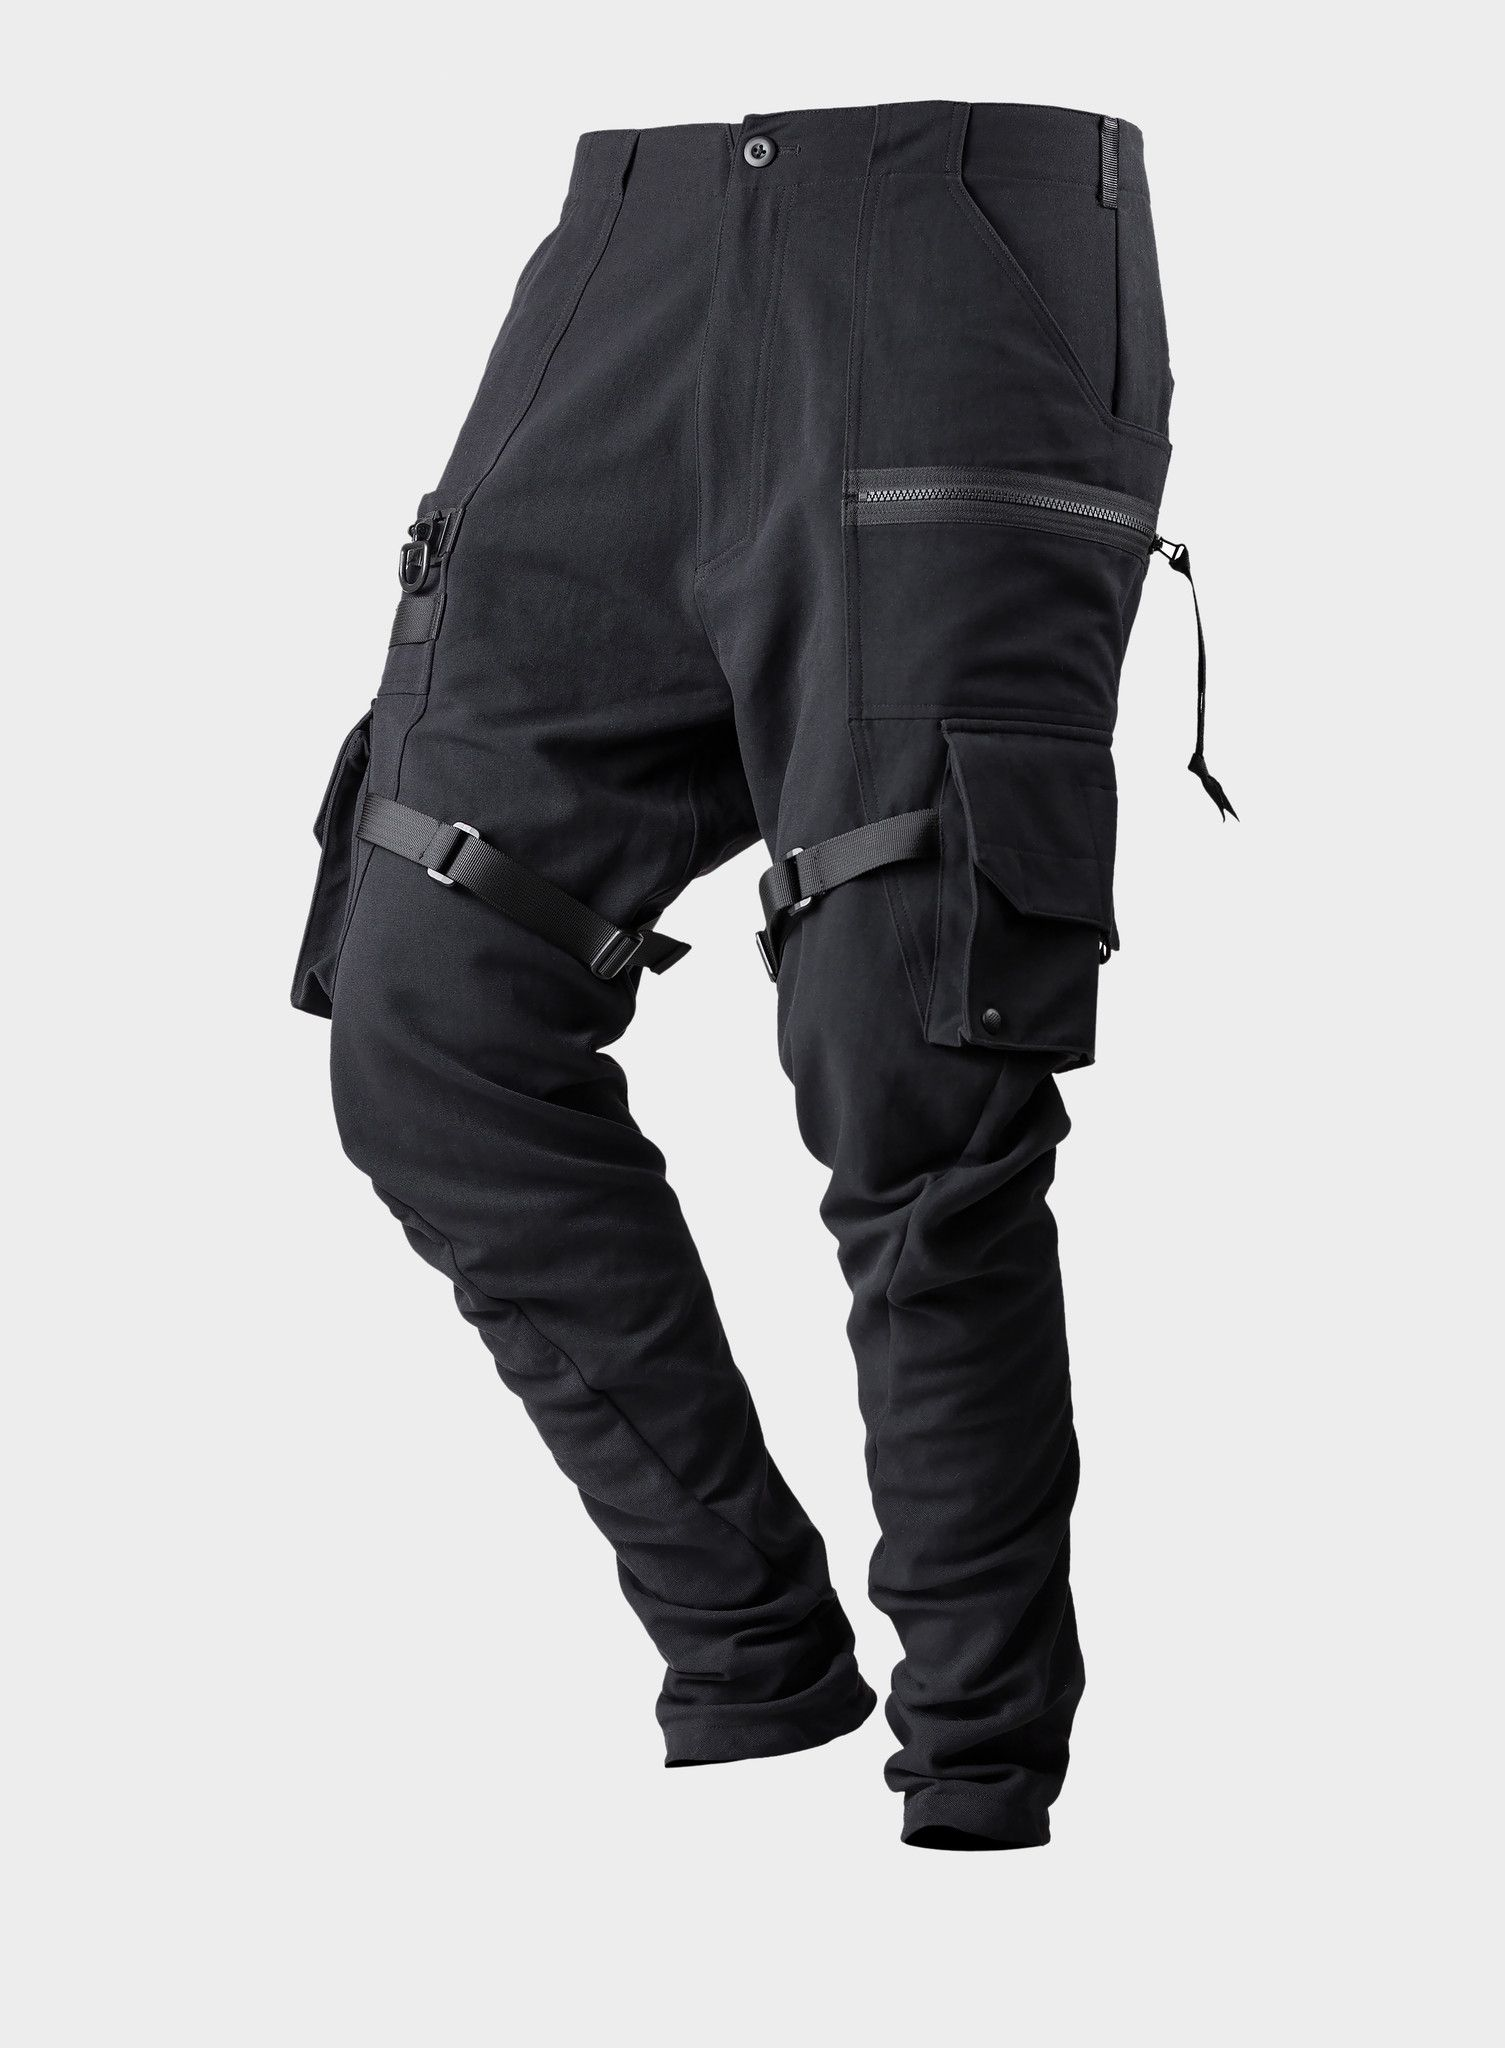 9f12e5b75888 Product Image | Things в 2019 г. | Fashion, Goth pants и Cyberpunk ...